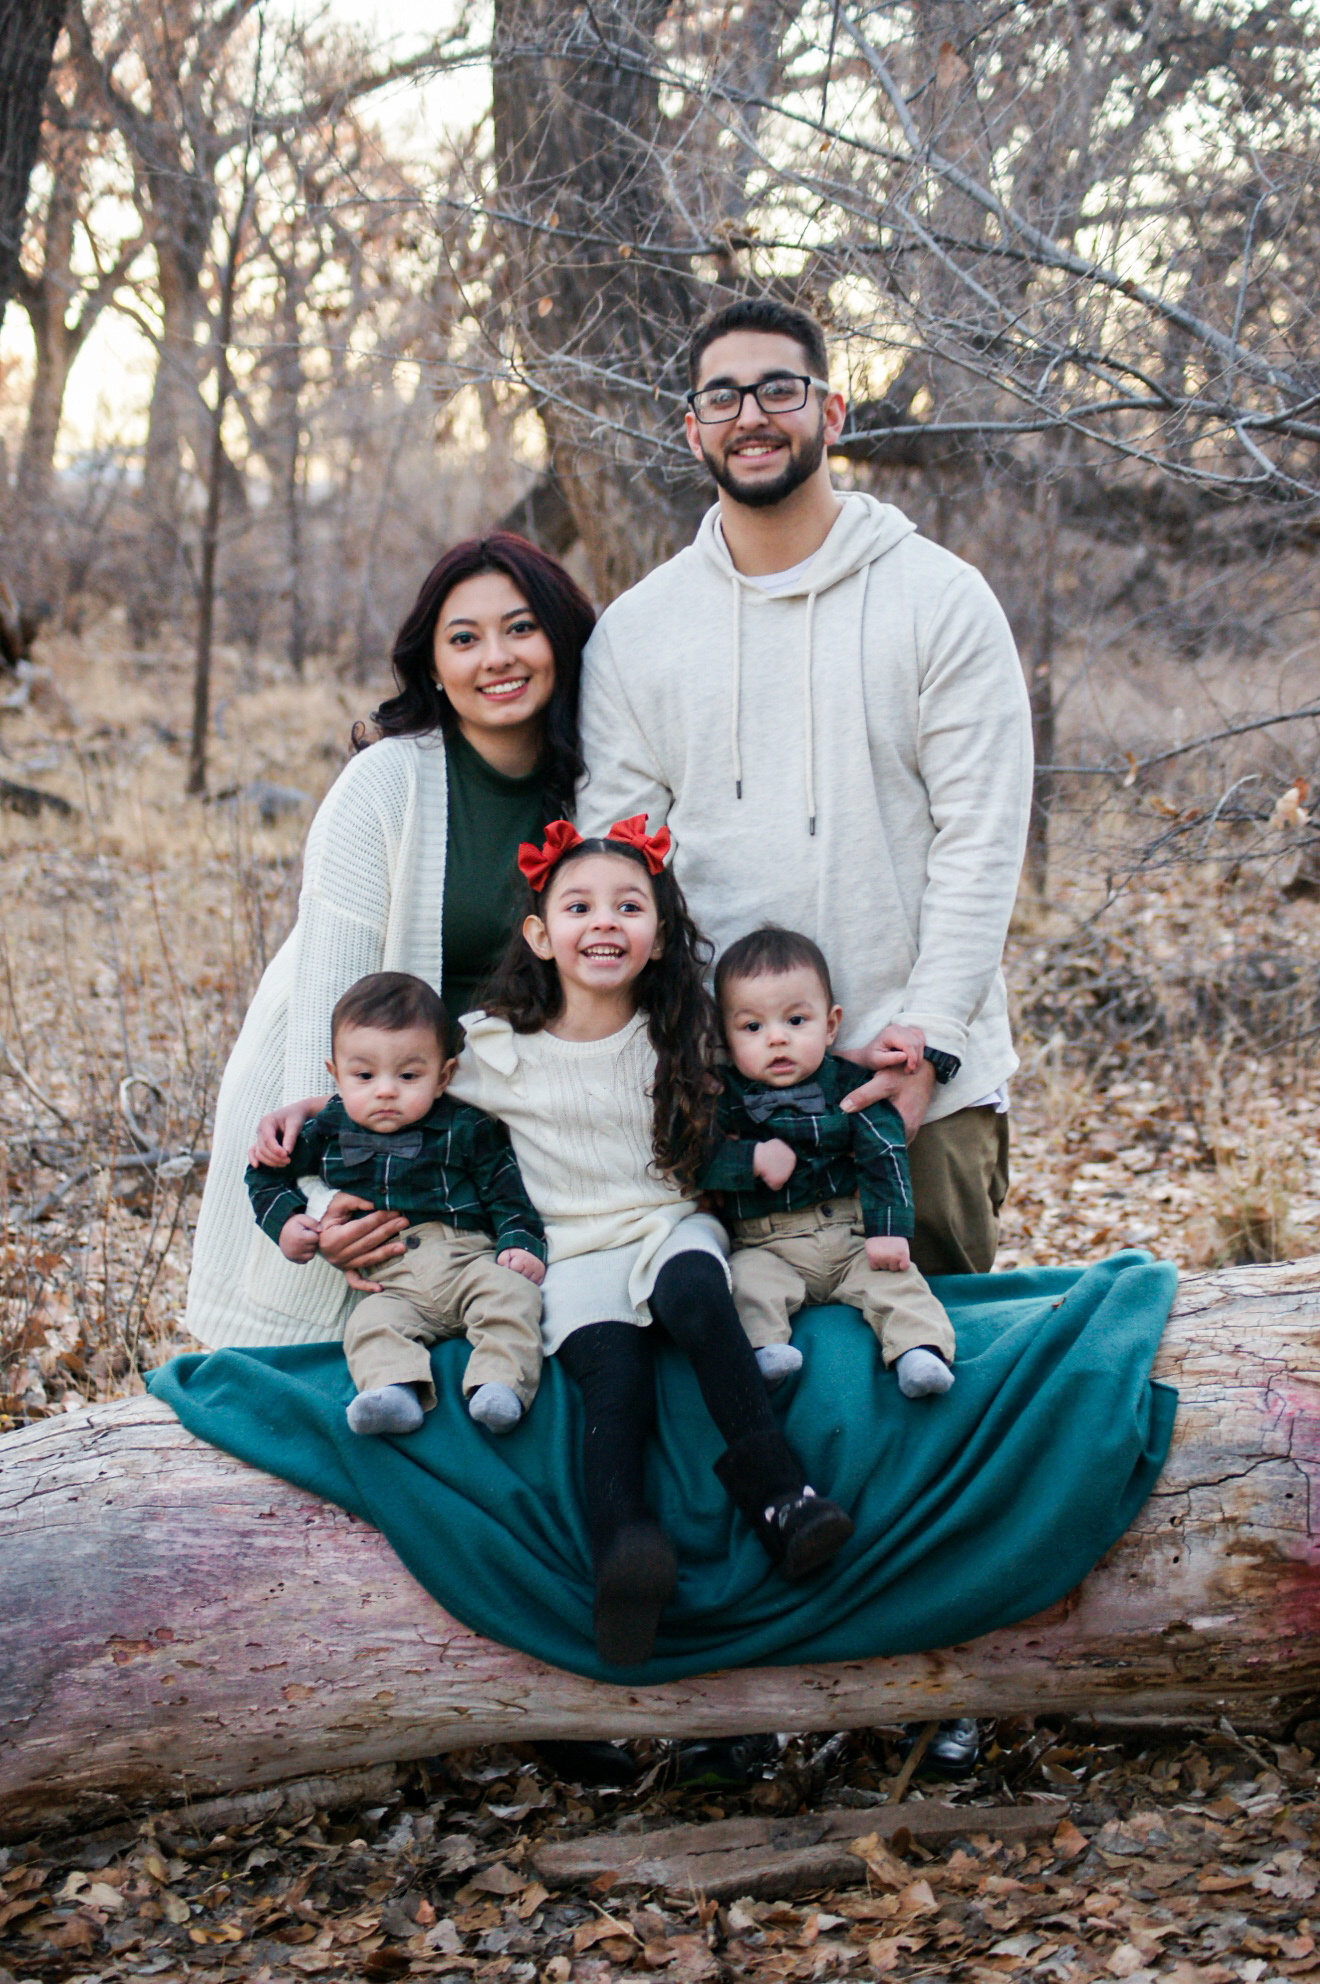 Heart Stories - Miranda Marquez's PPCM Story - Family Picture